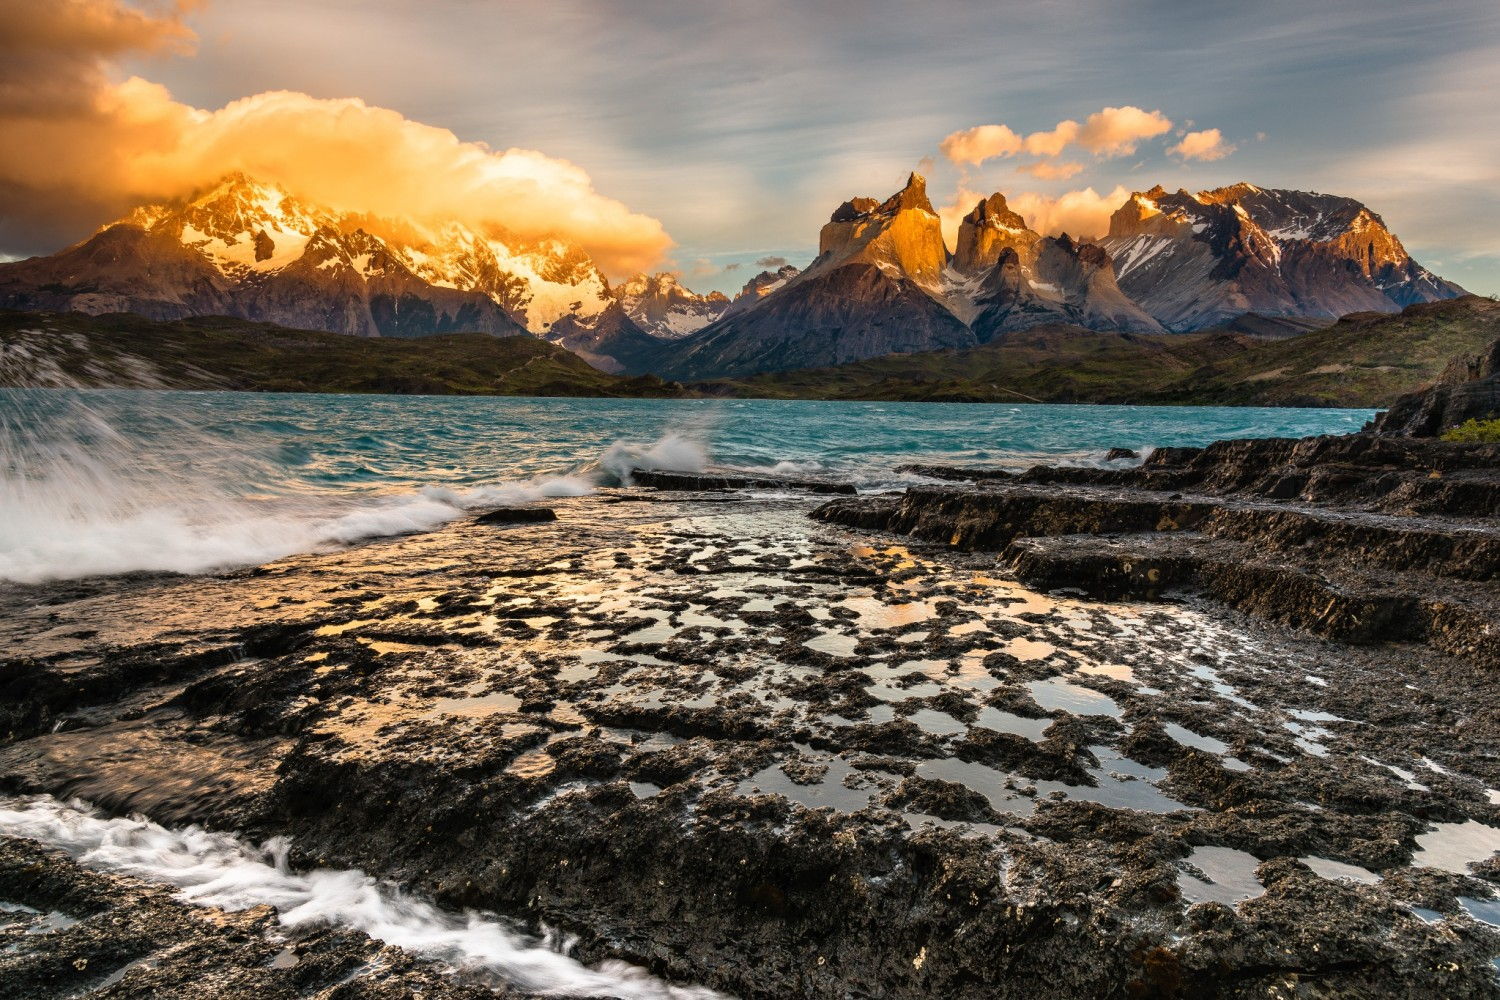 500px and Weather.com Team Up to Share Your Photos with a Brand New Audience